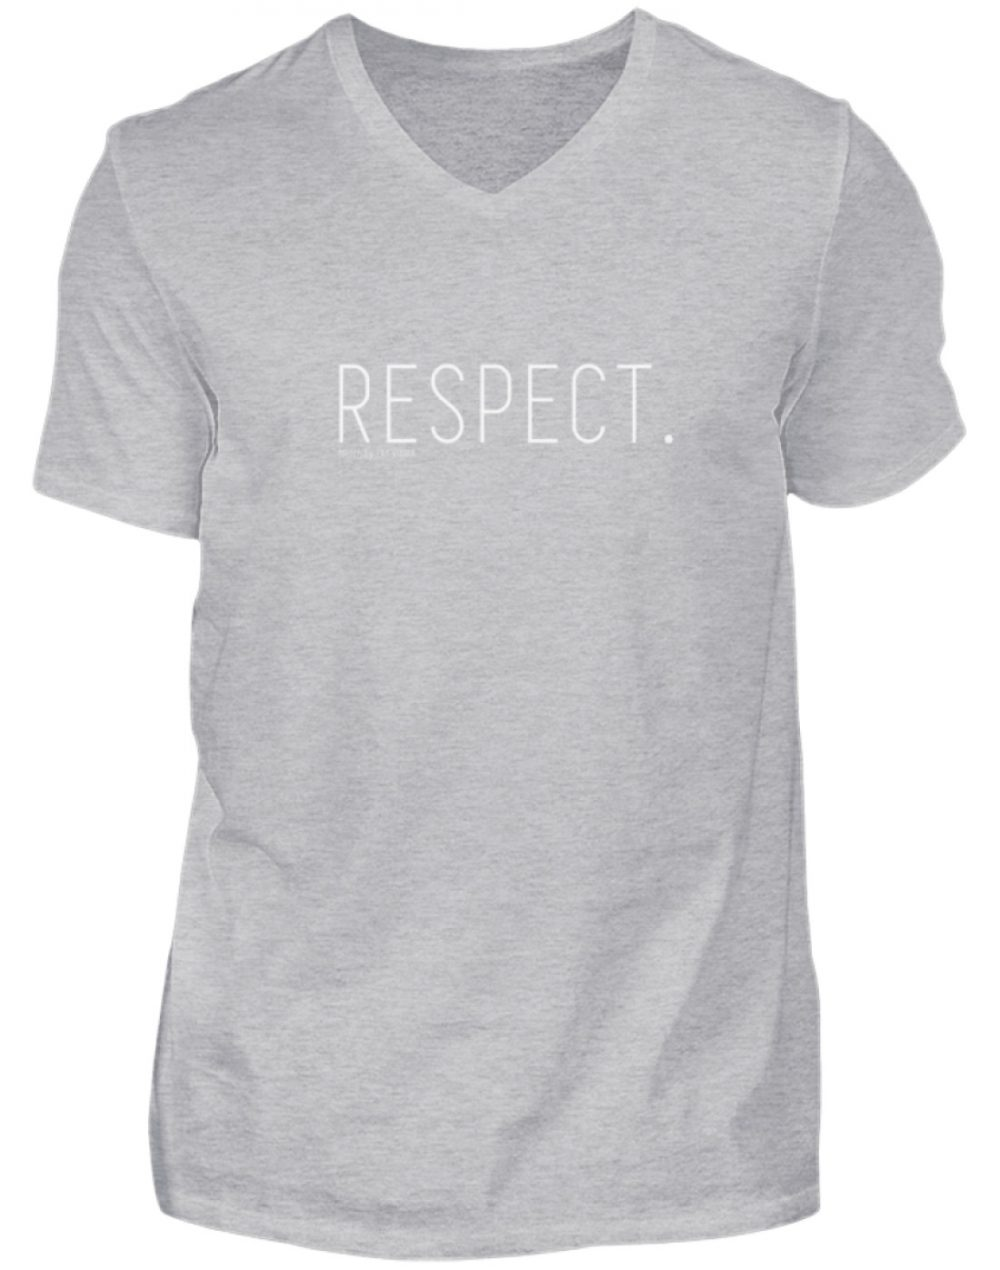 RESPECT. - Herren V-Neck Shirt-17